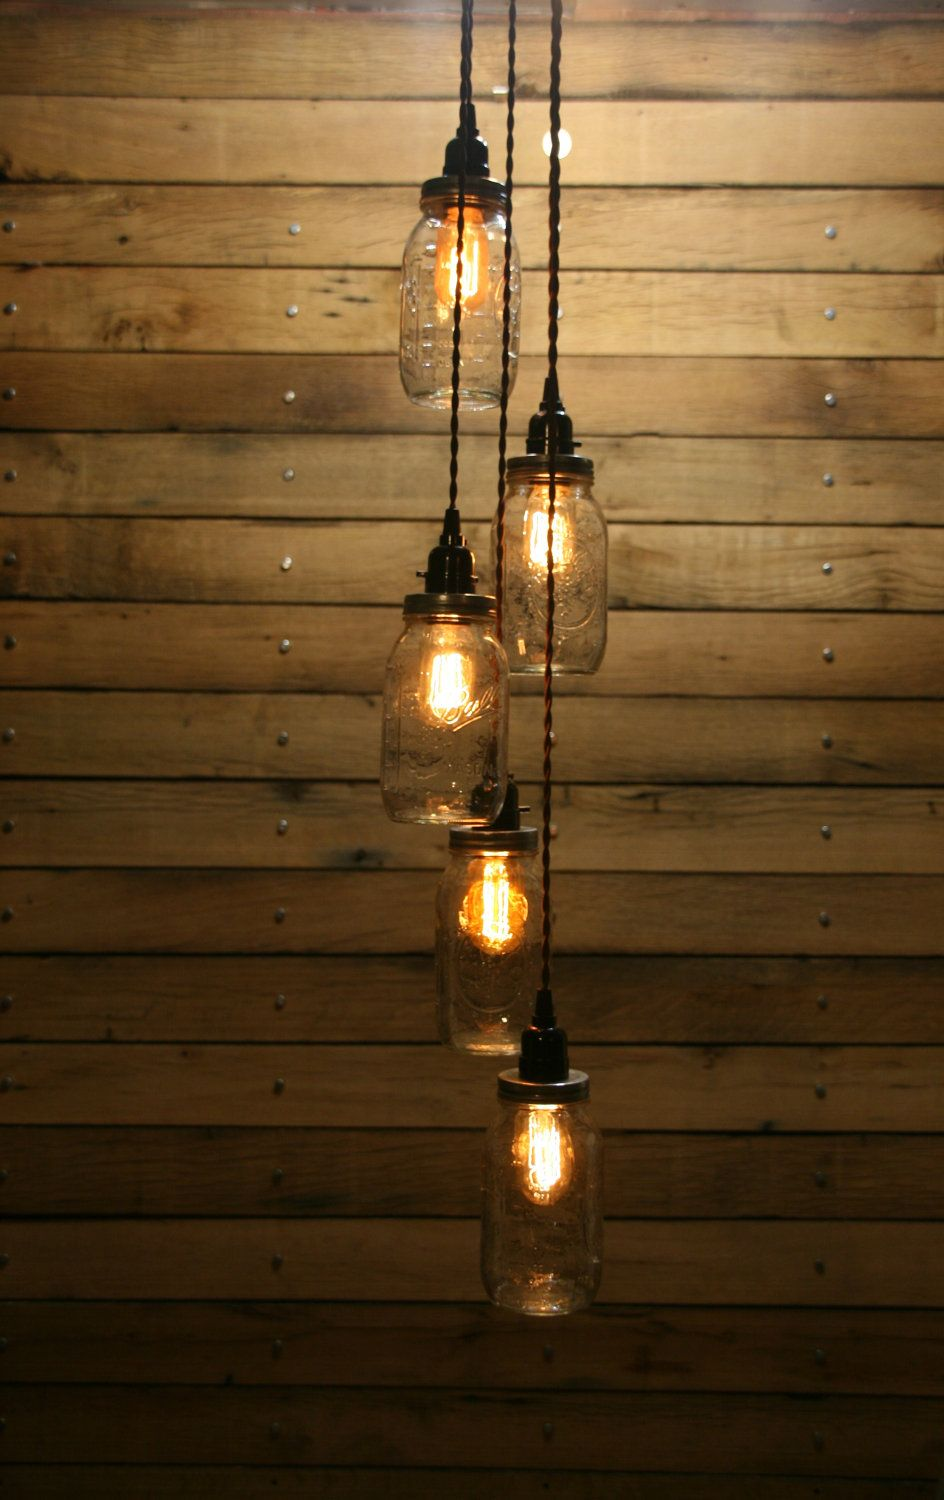 diy 5 jar pendant light mason jar chandelier light kit staggered length hanging mason jar hanging pendant light kit by on etsy